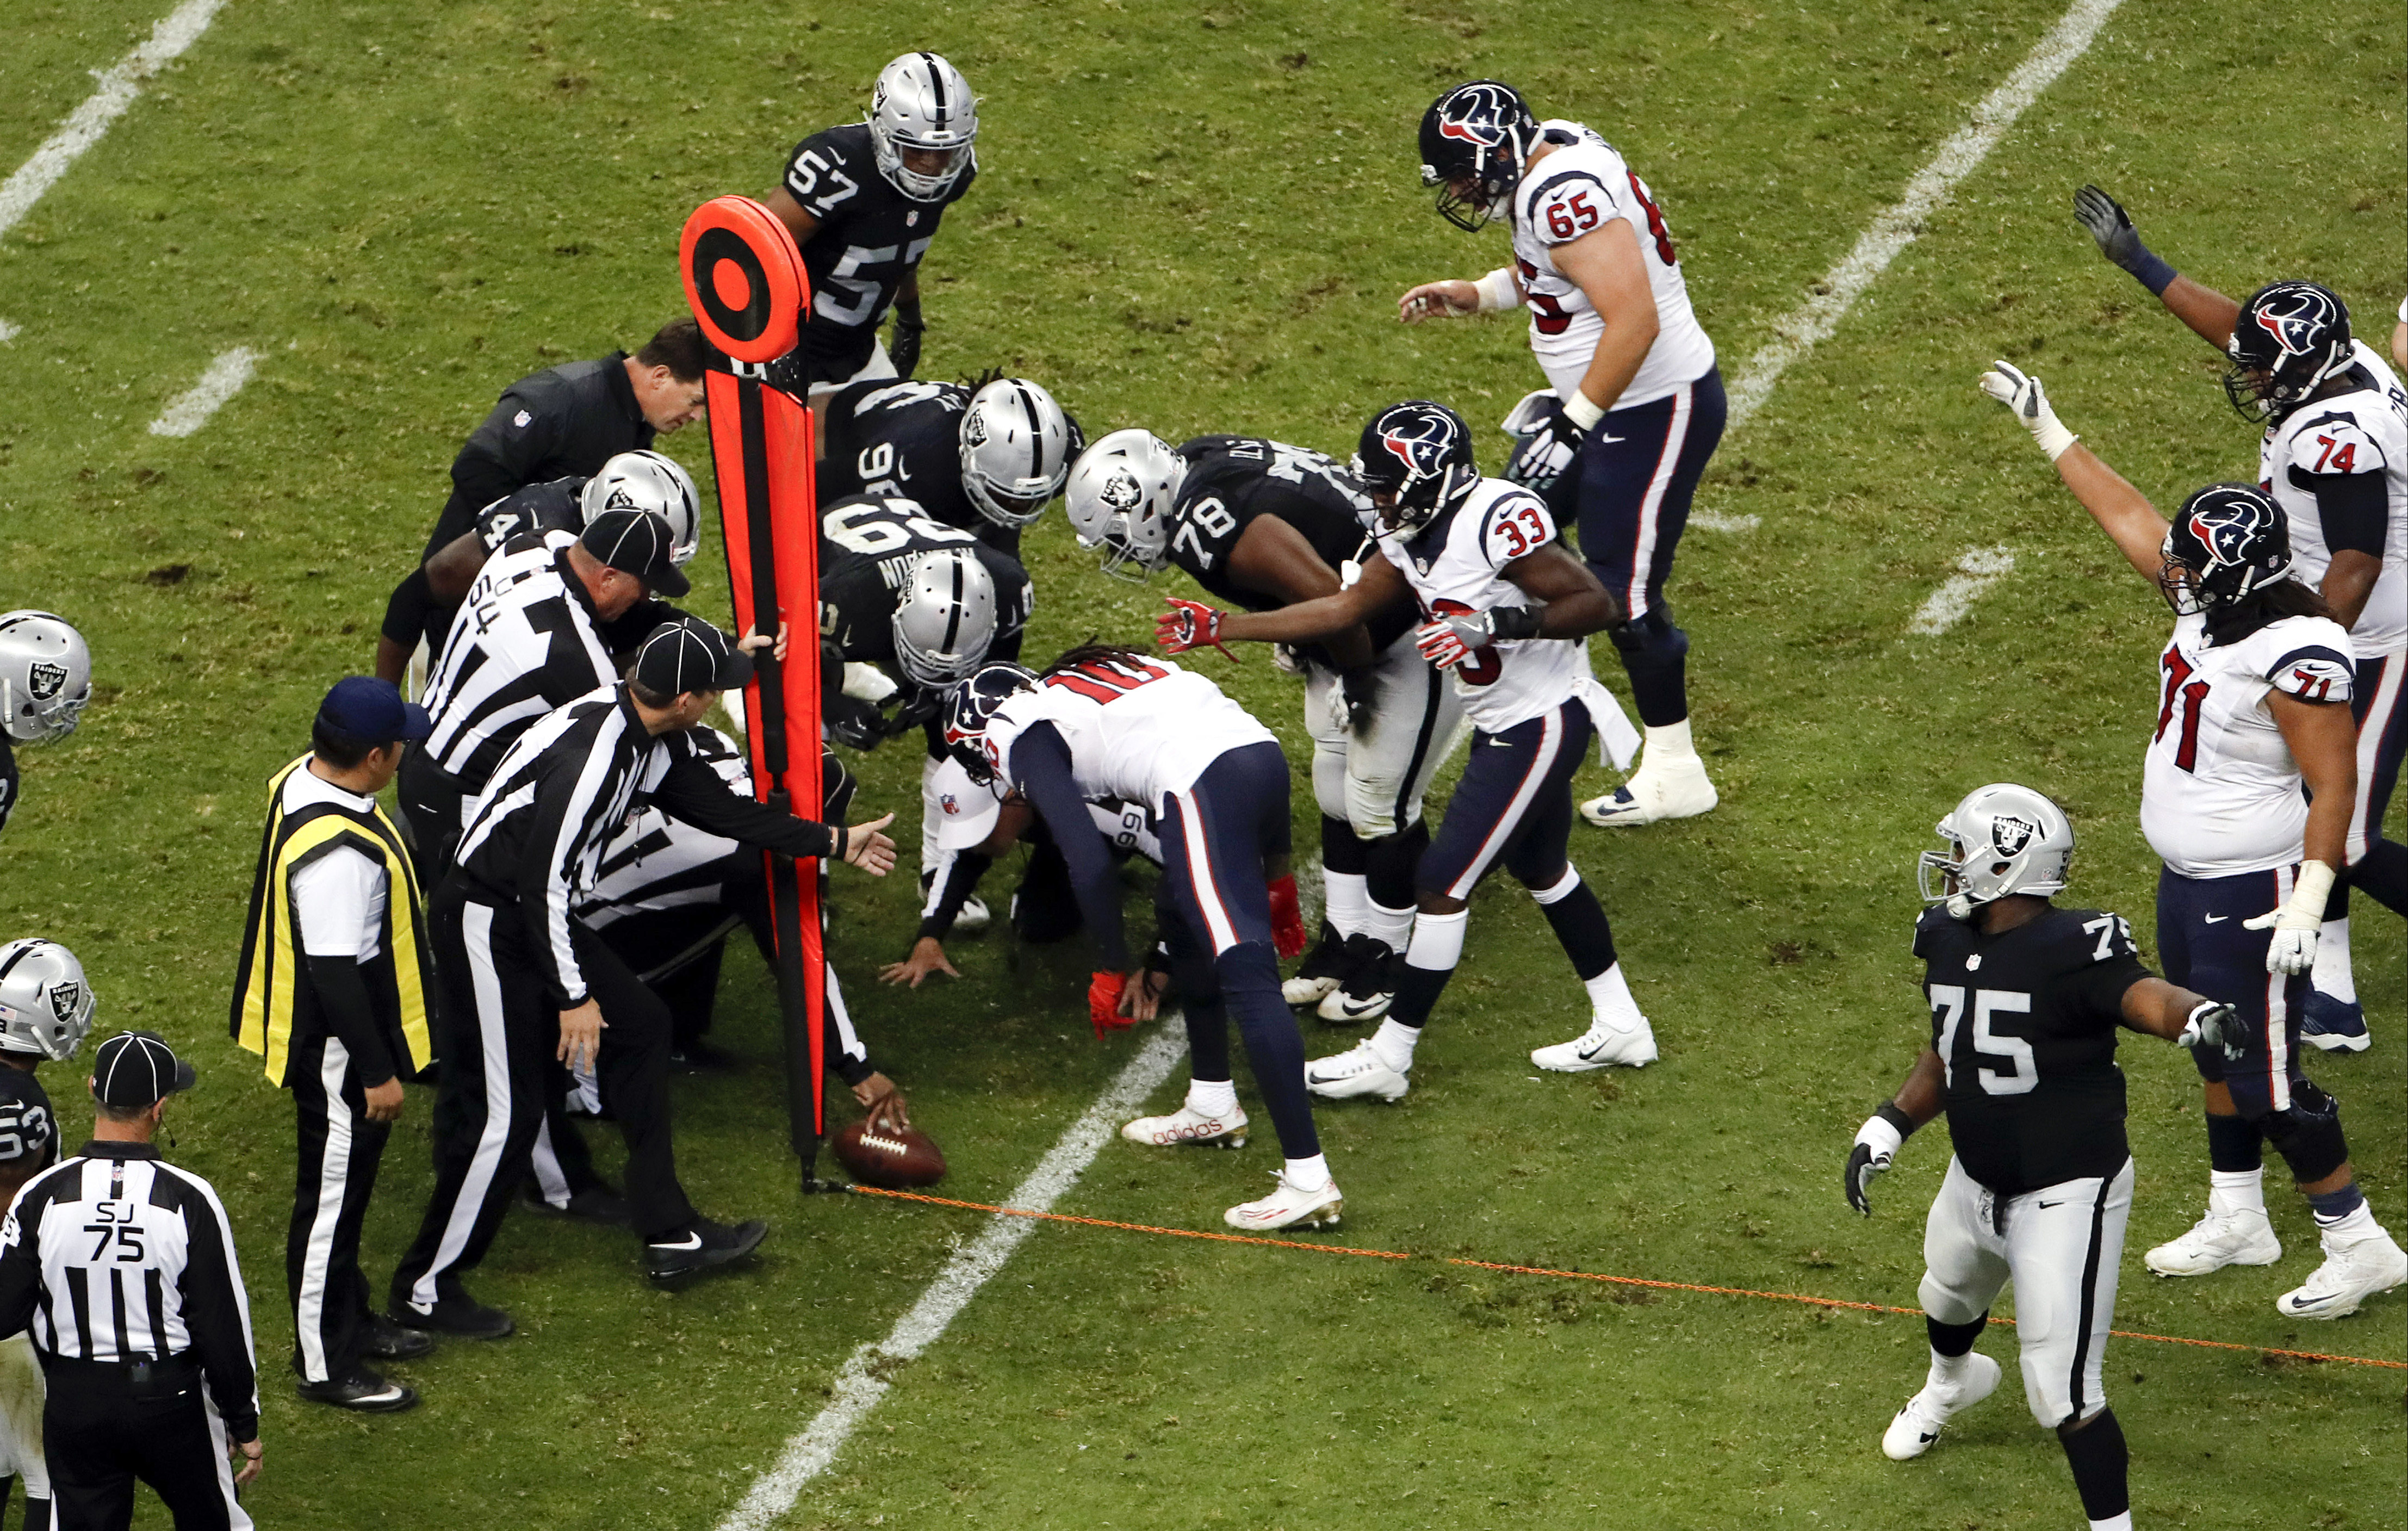 Referees measure as the Houston Texans fall short of getting a first down during the second half of an NFL football game against the Oakland Raiders Monday, Nov. 21, 2016, in Mexico City. (AP Photo/Dario Lopez-Mills)